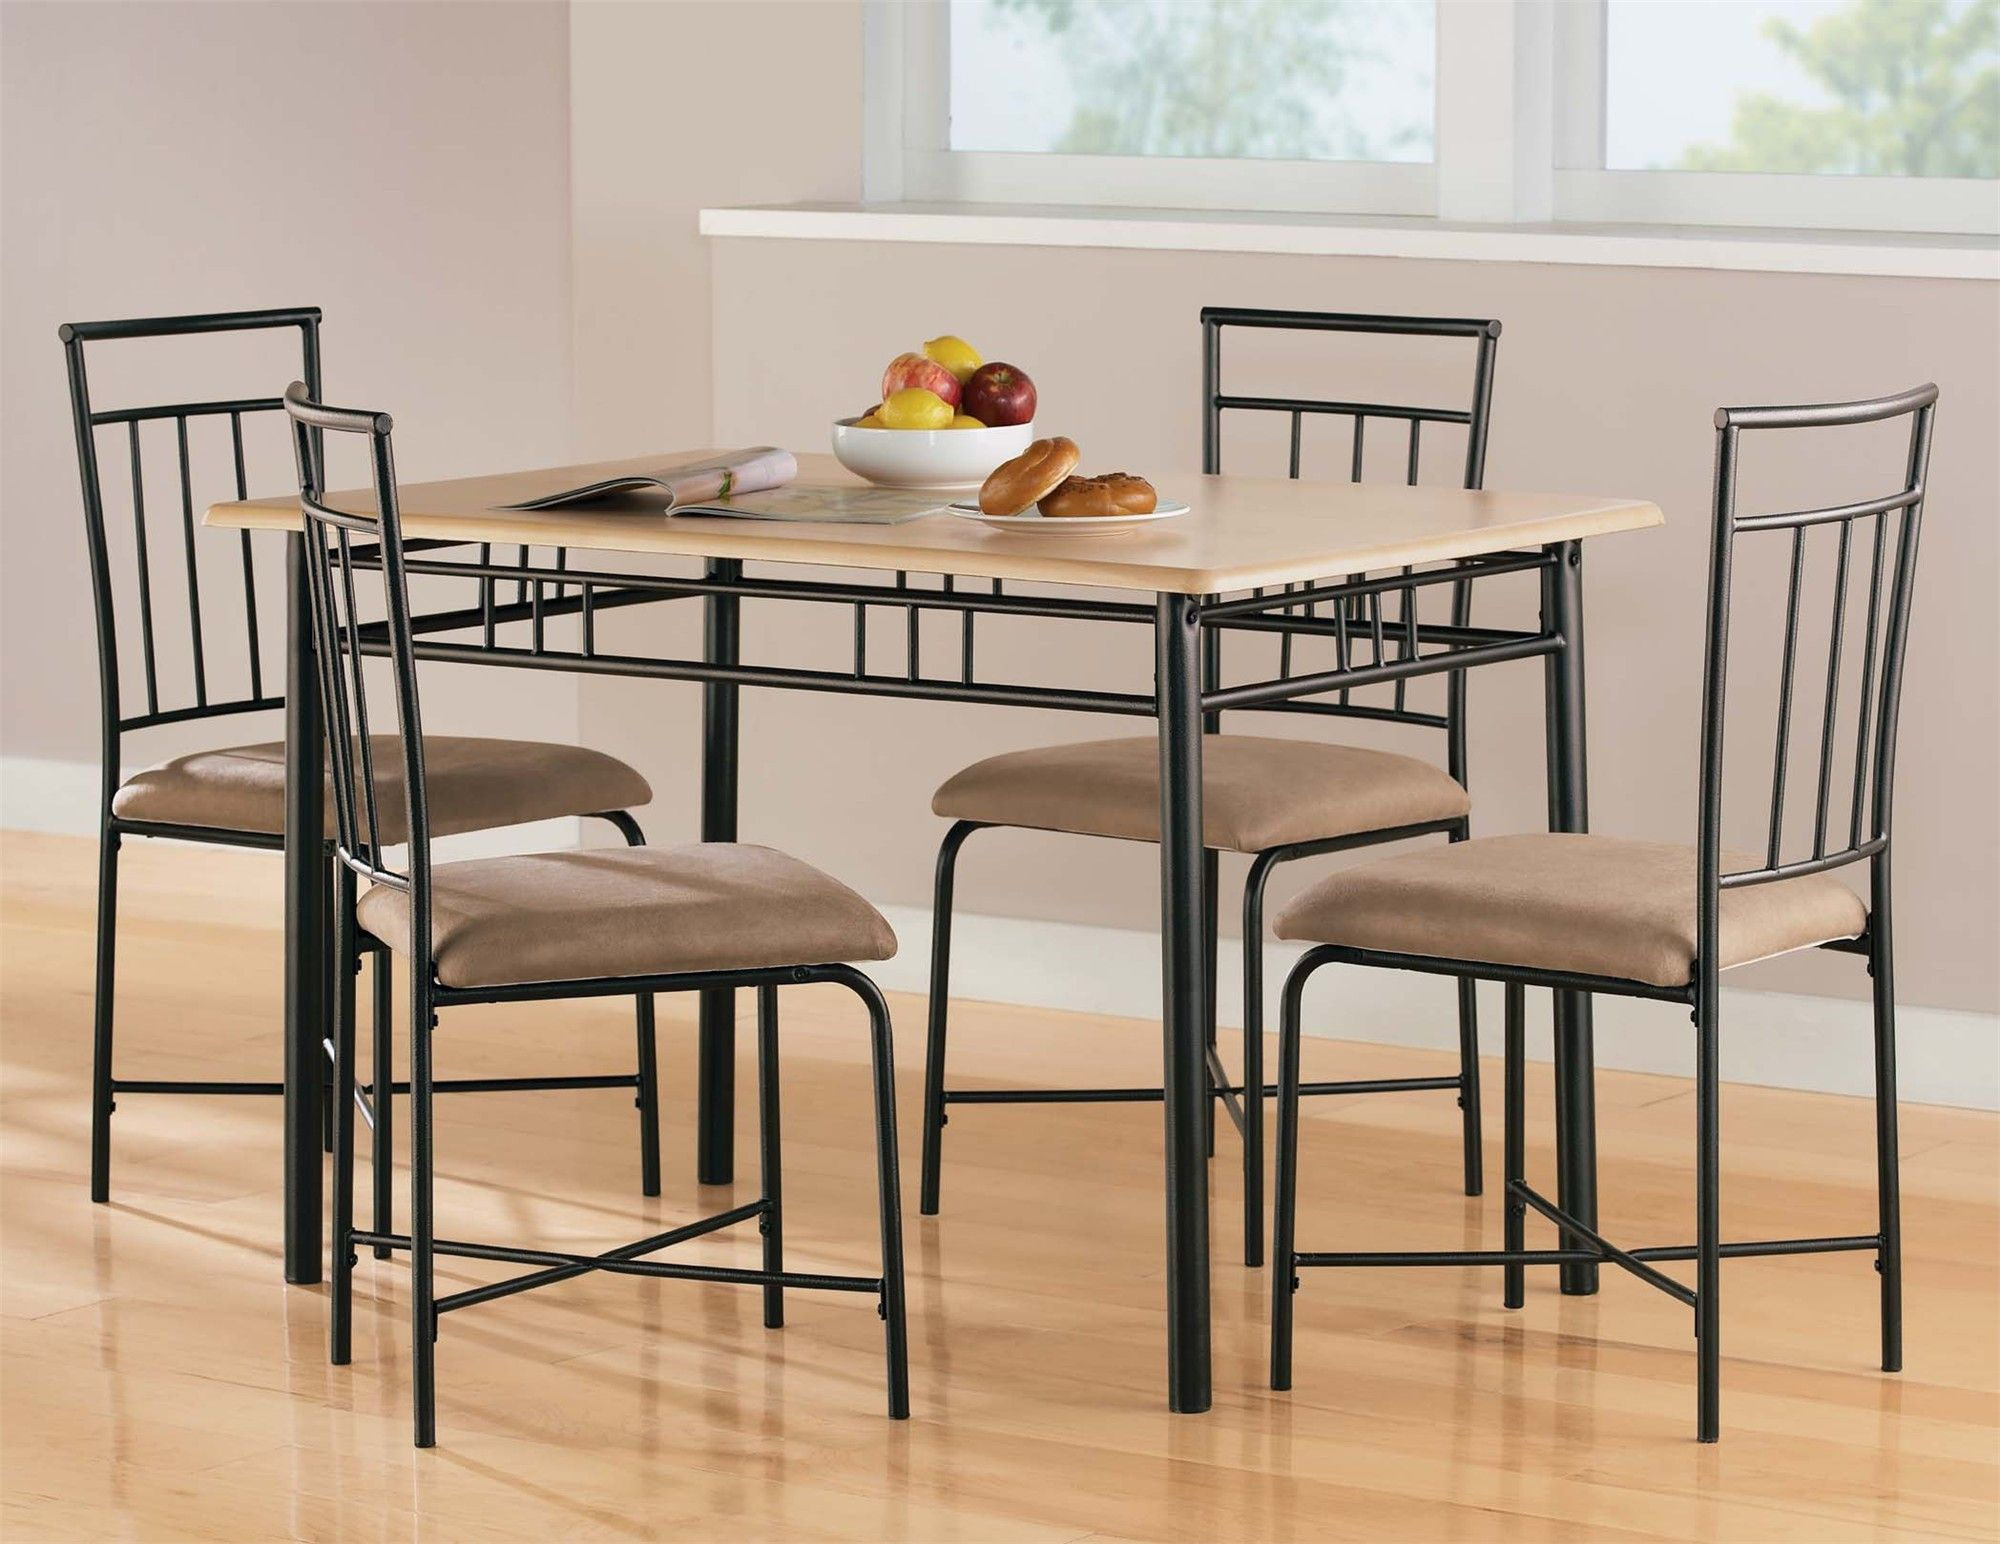 Dining table sets wood and metal dining tables wood and metal dining - 5 Piece Dining Set Wood Metal 4 Chairs Table Kitchen Breakfast Furniture New